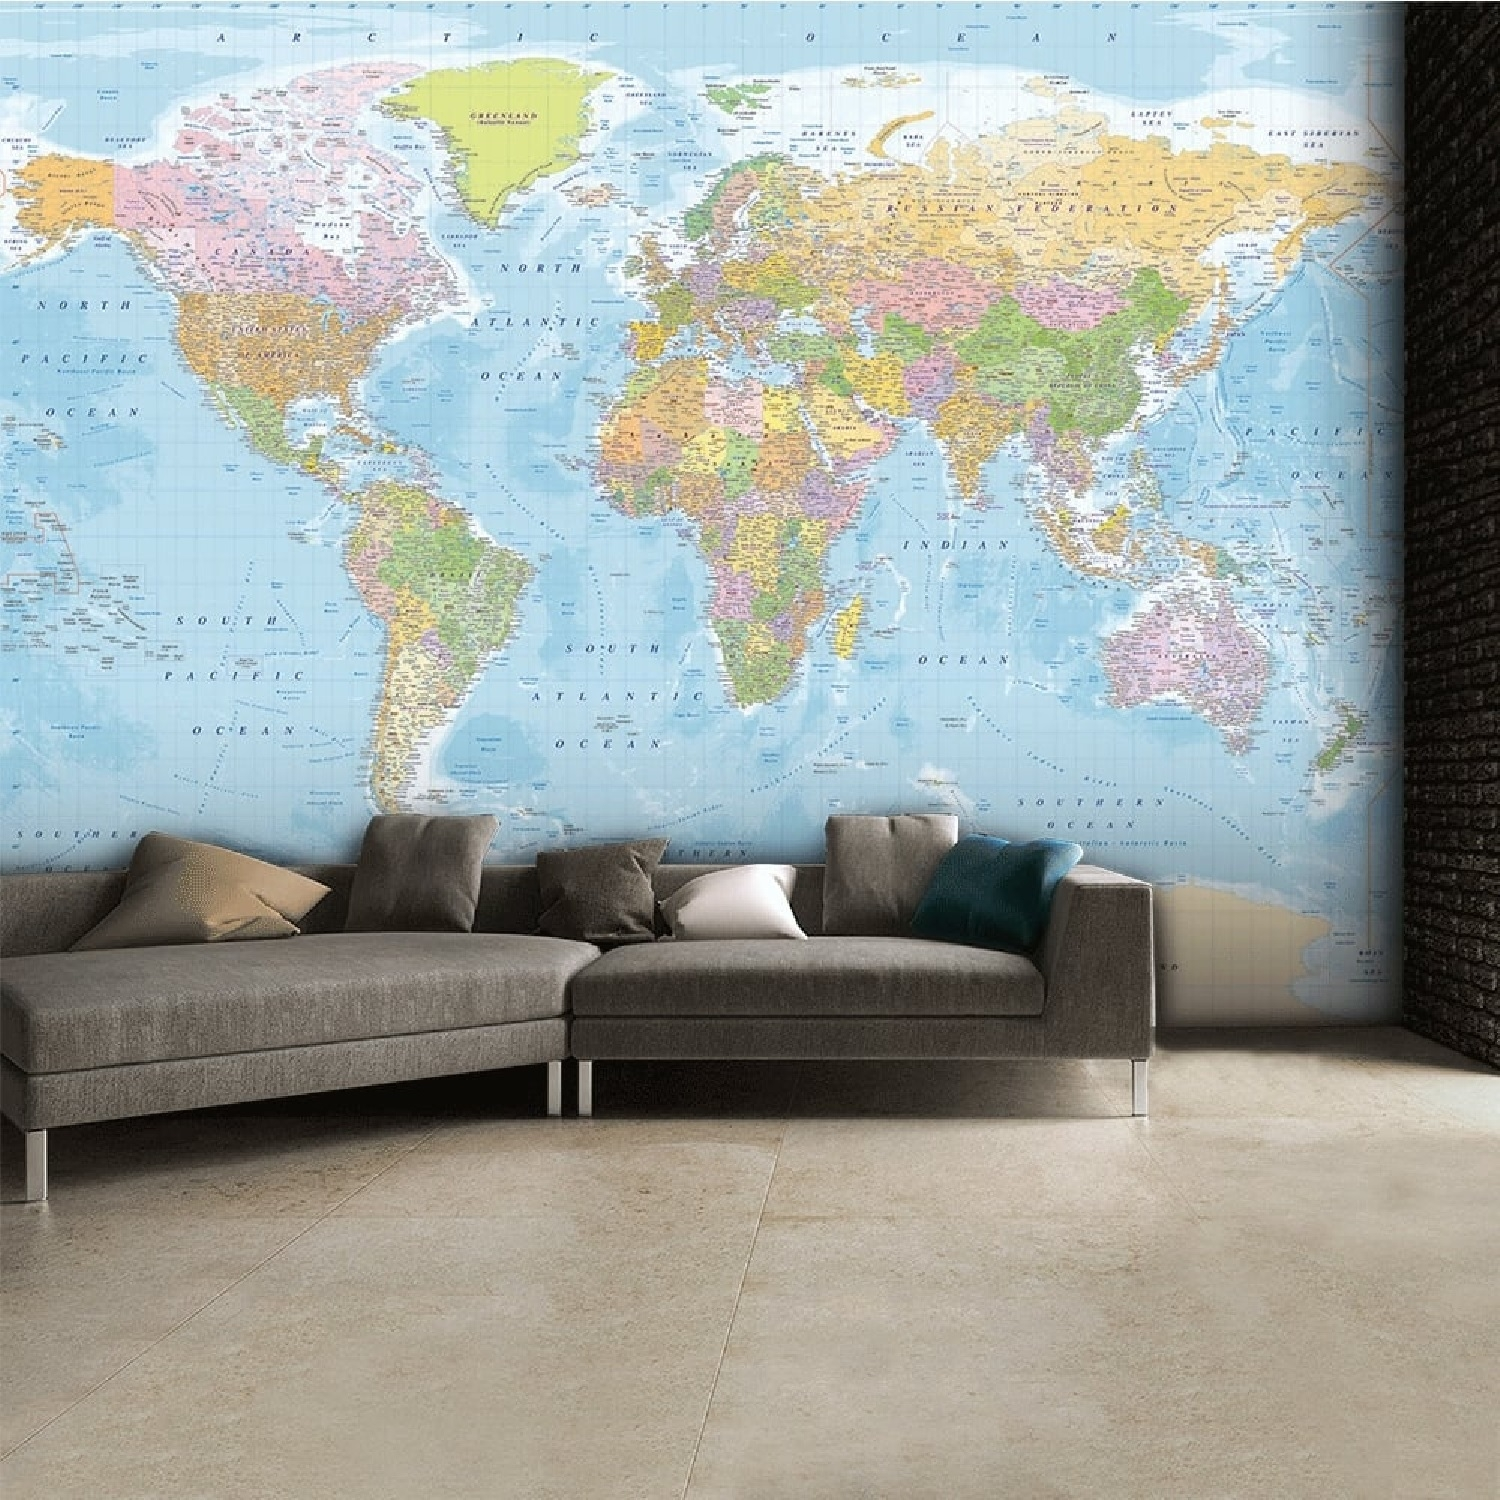 Image of Vintage Blue Map Wall Mural